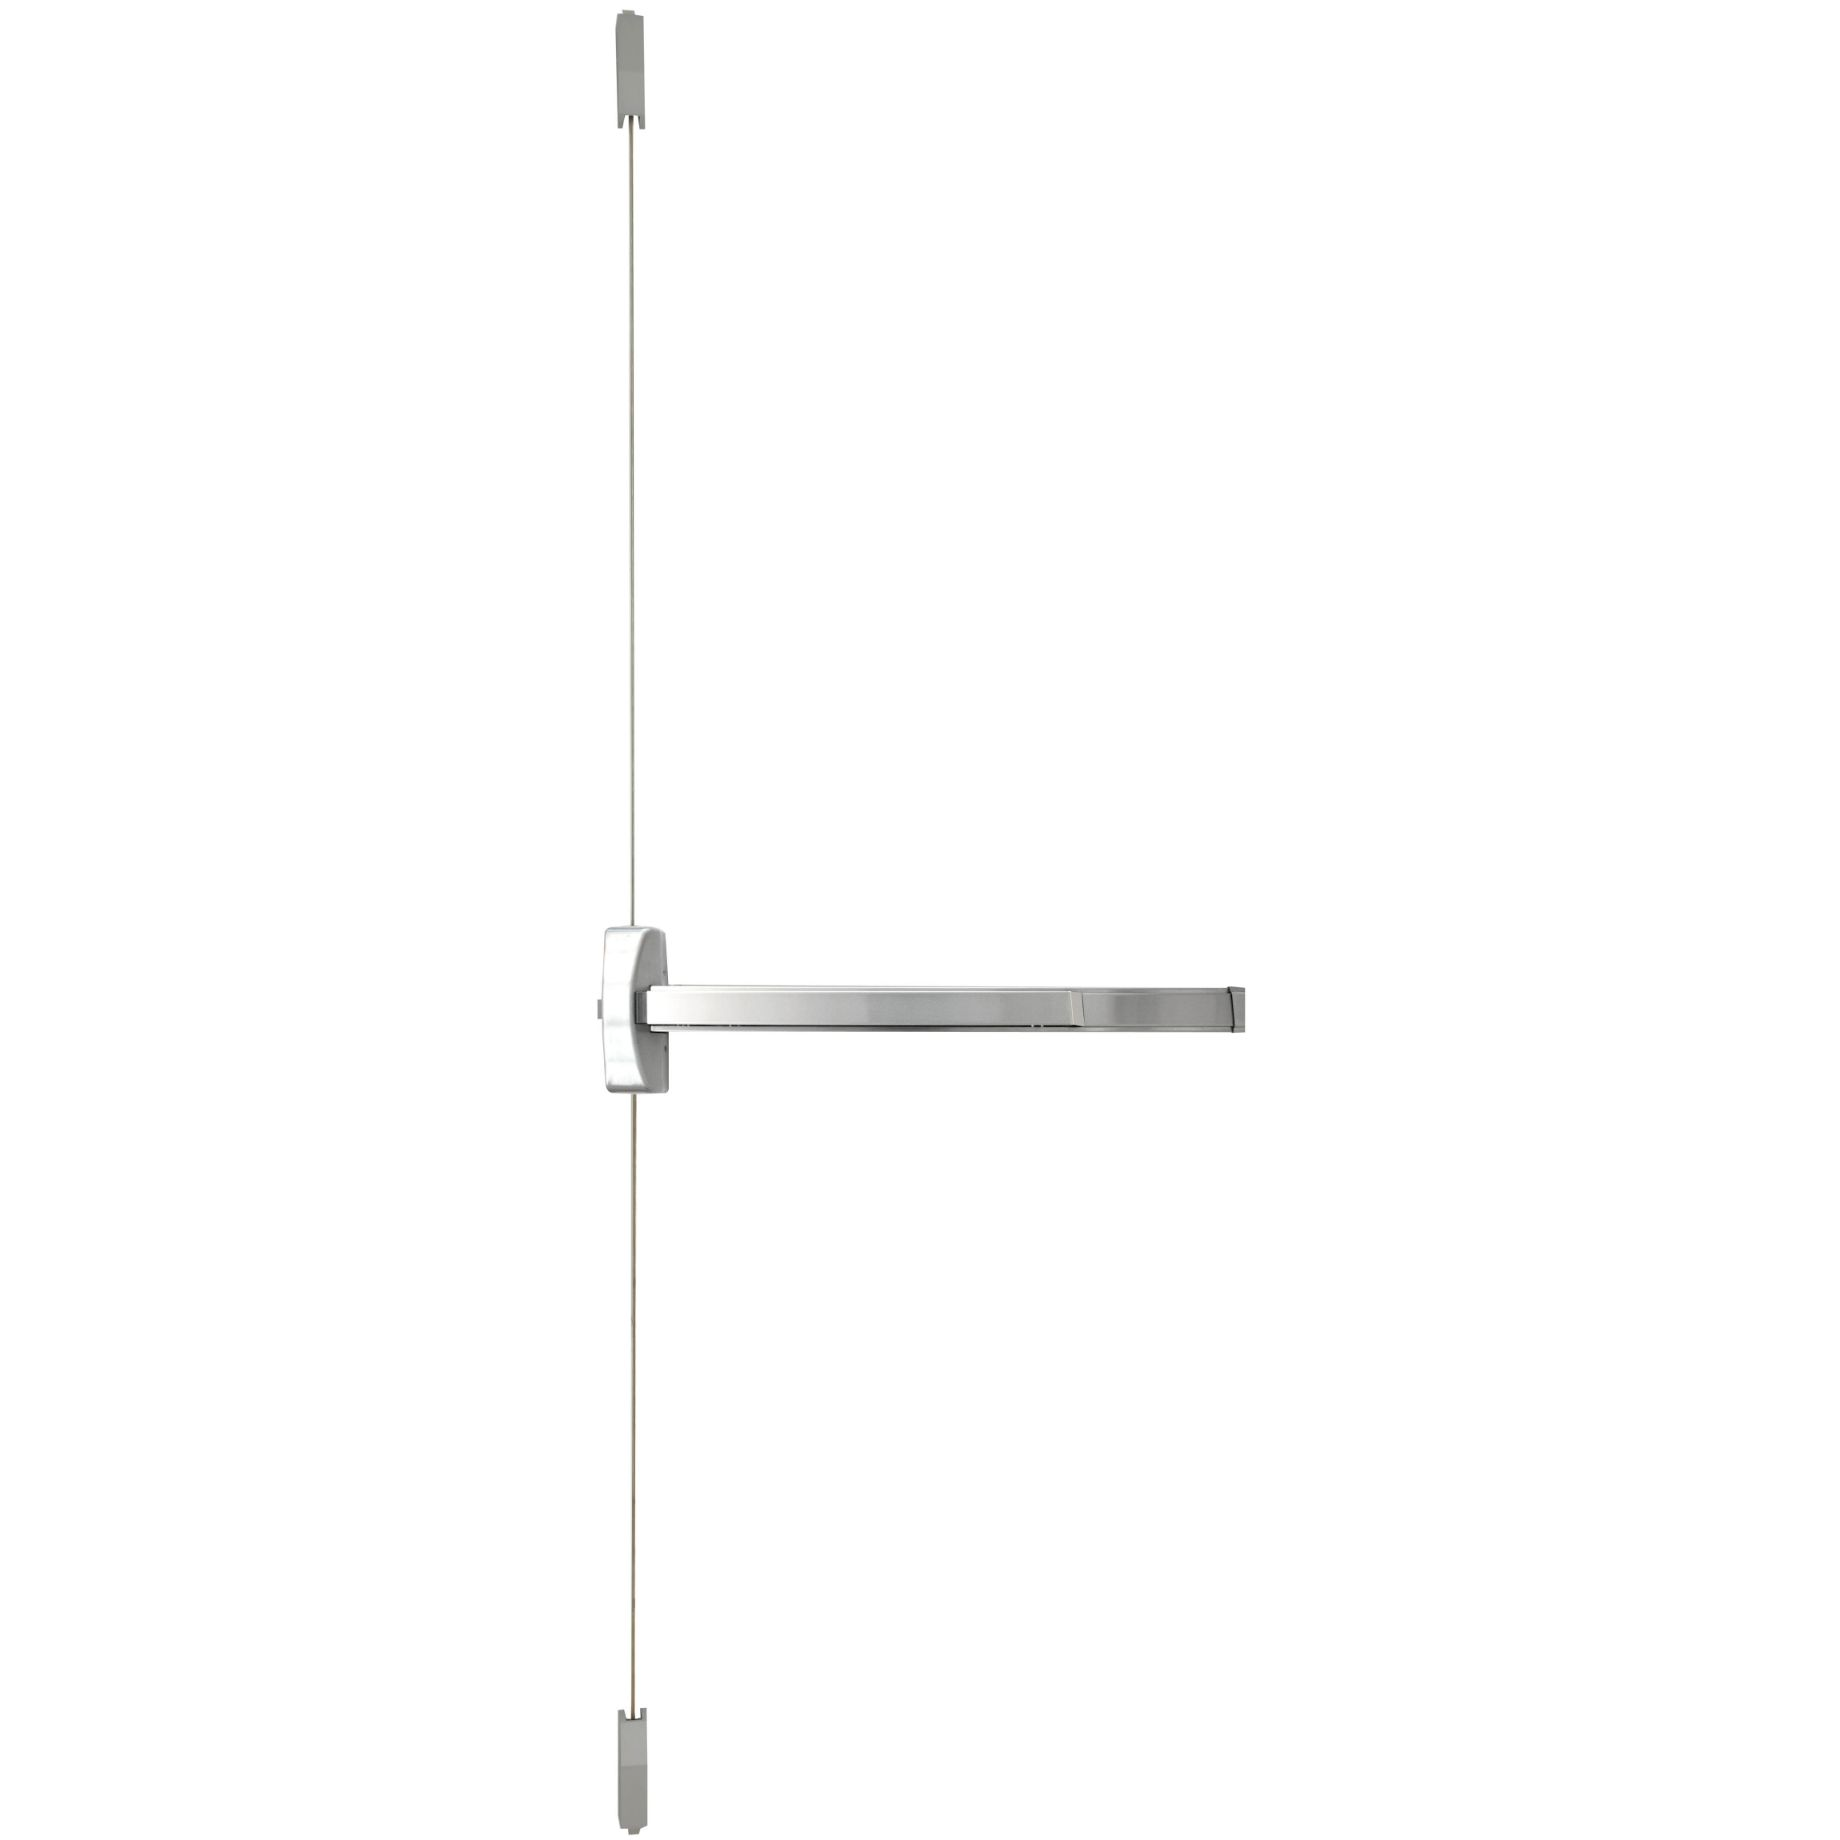 9700 SERIES Vertical Rod Push Bar — Stainless Steel